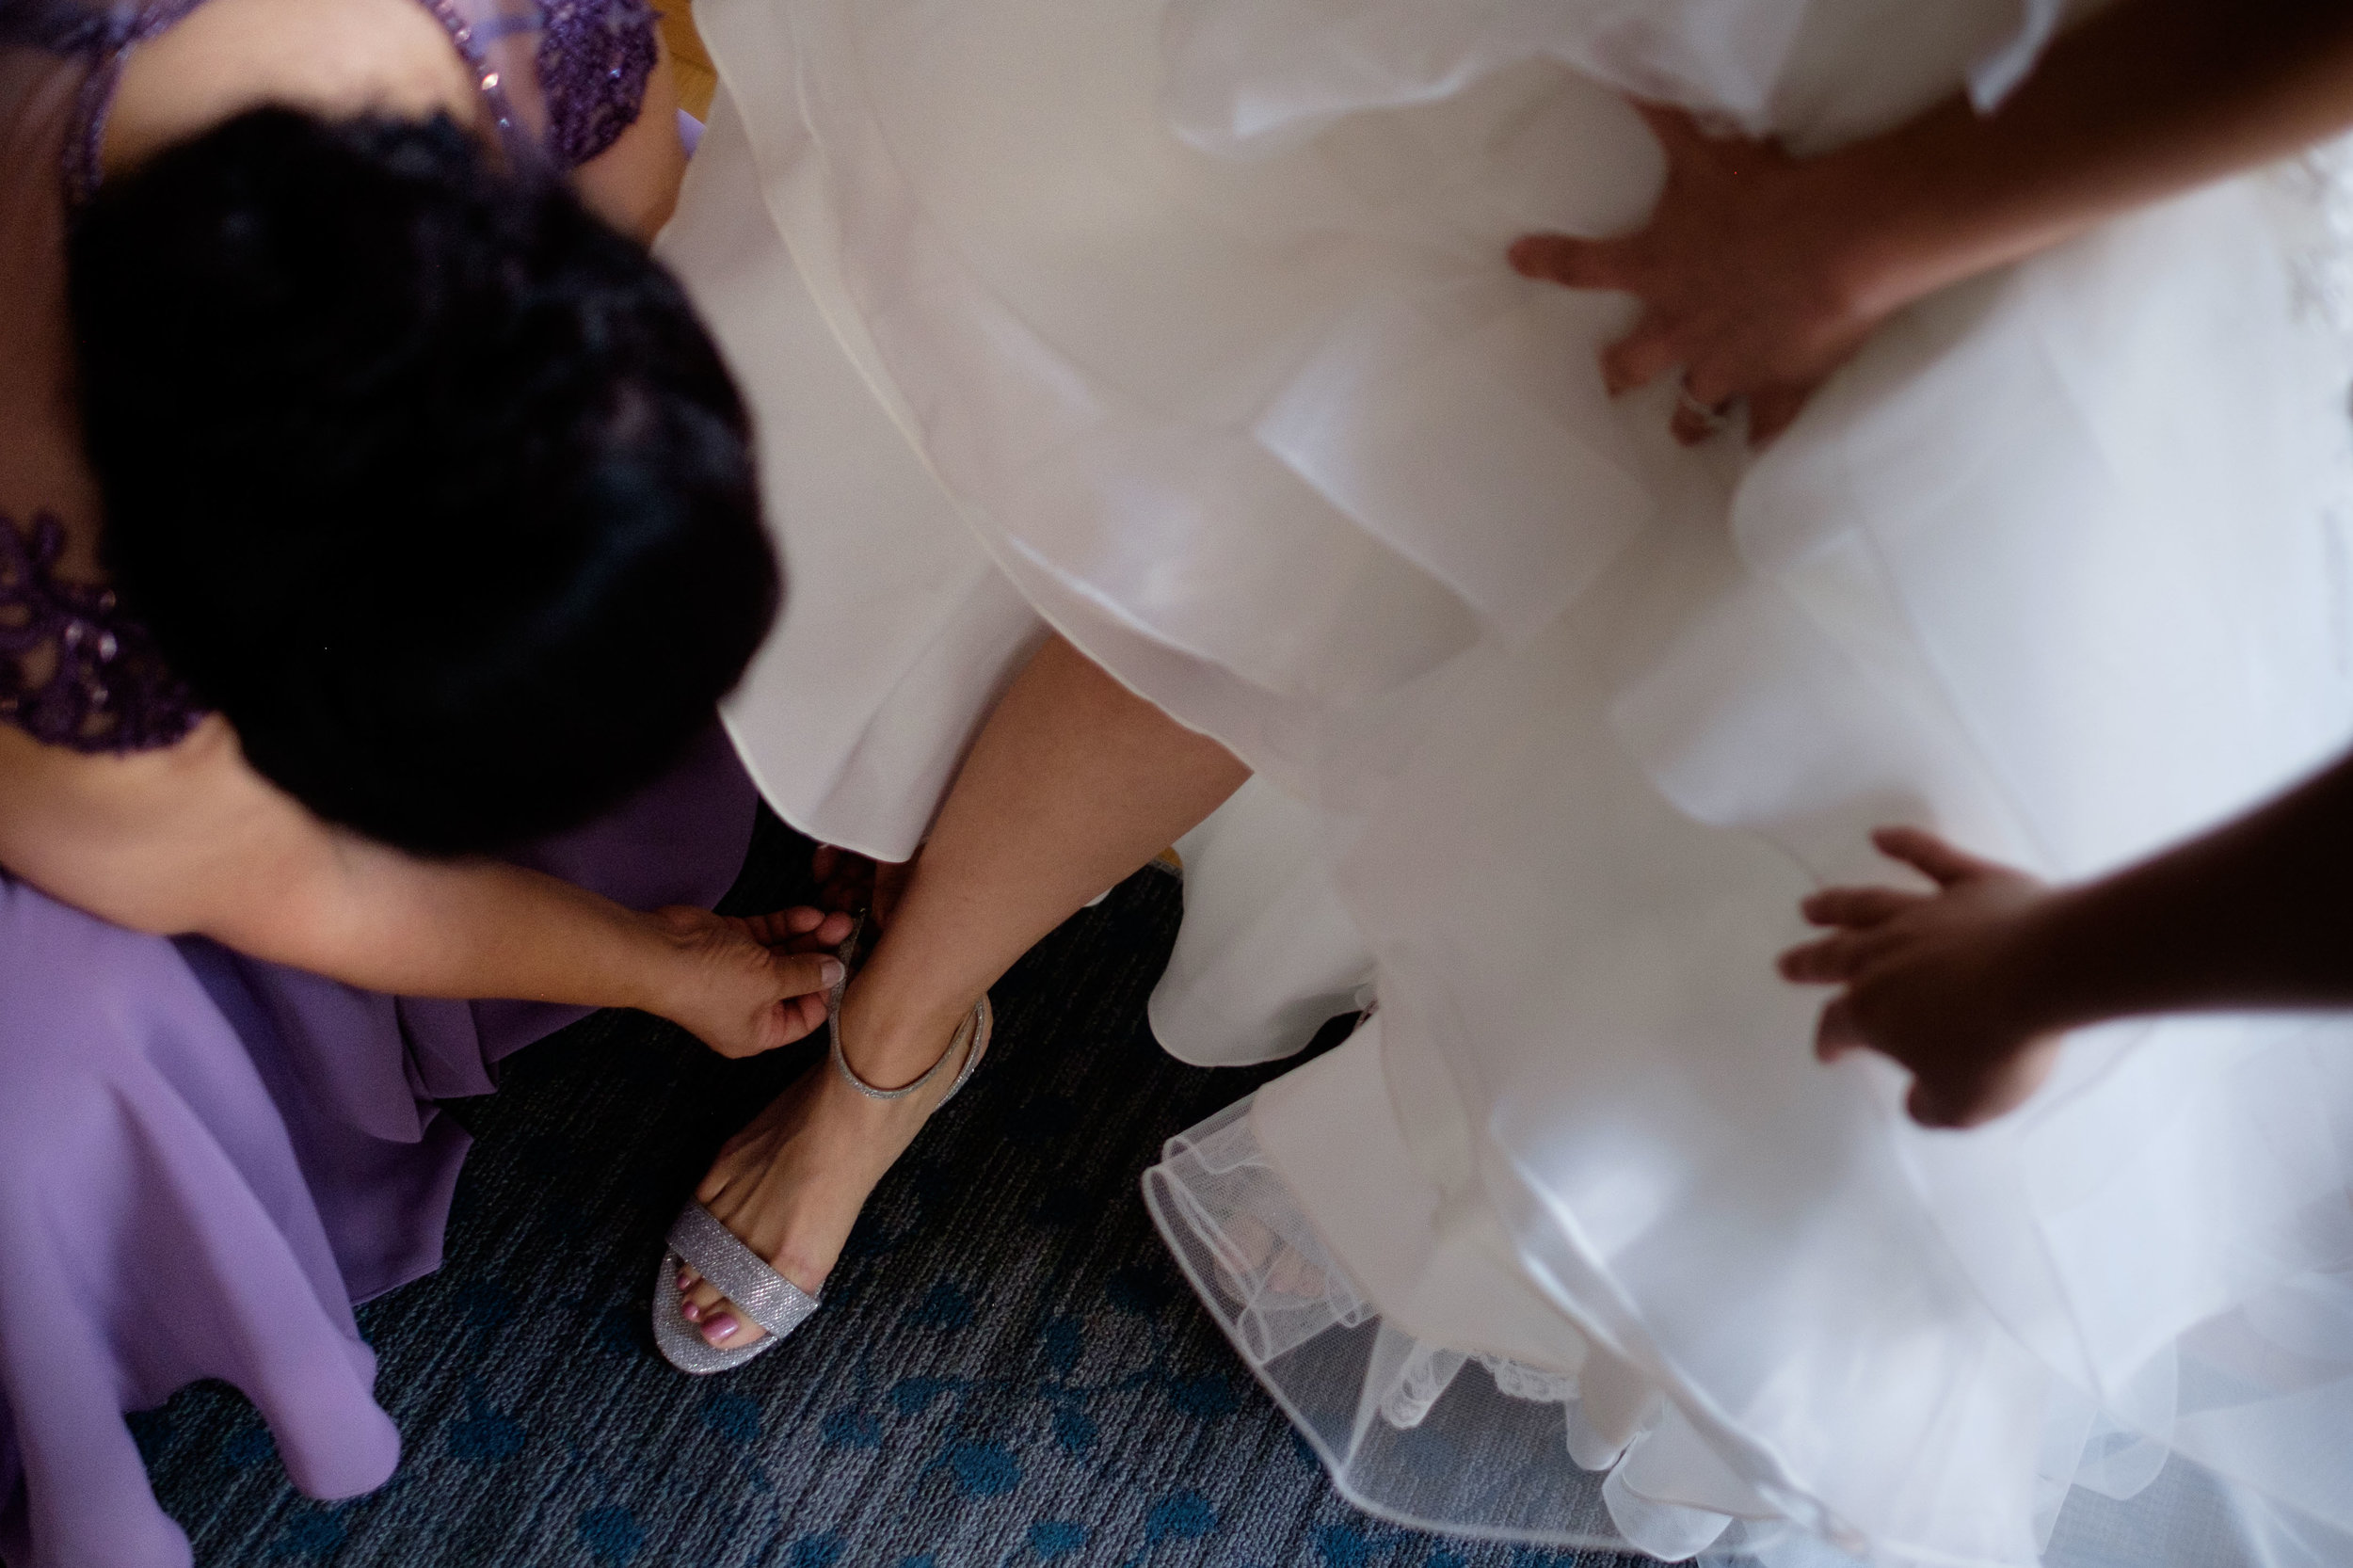 Linda gets help with her shoes as she gets ready for her wedding at the Hart House in Toronto.